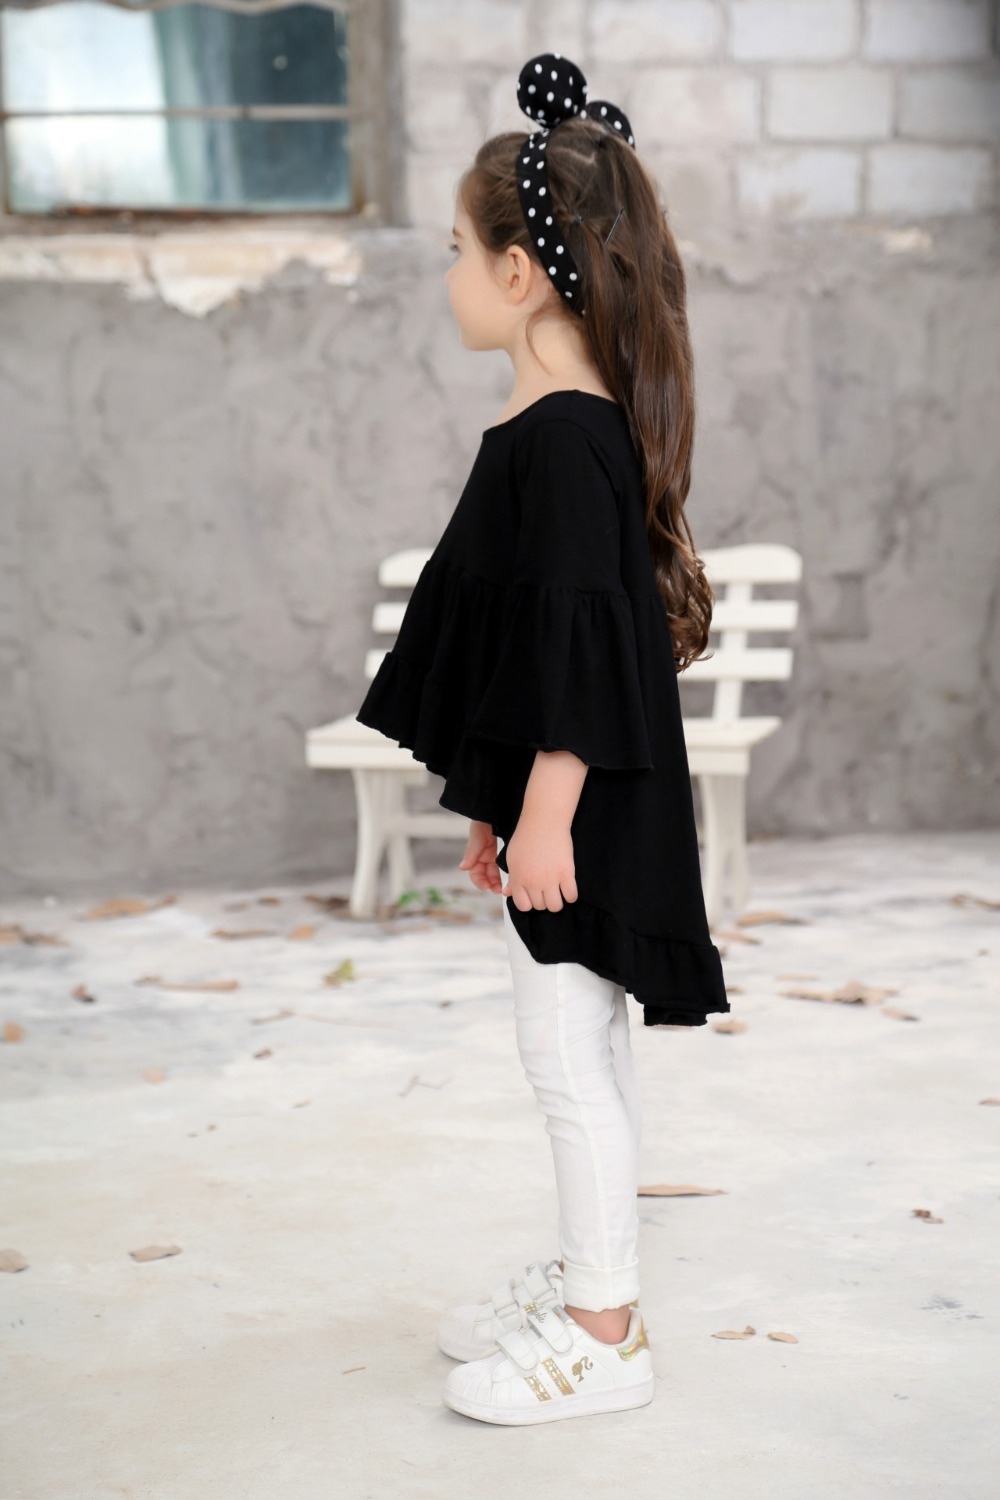 Hot Loose White Red Black Girls T Shirt Ruffle Sleeves Cotton Children Beach Kids Tees Tops Baby Girl Clothes Beautiful In Jackets Coats From